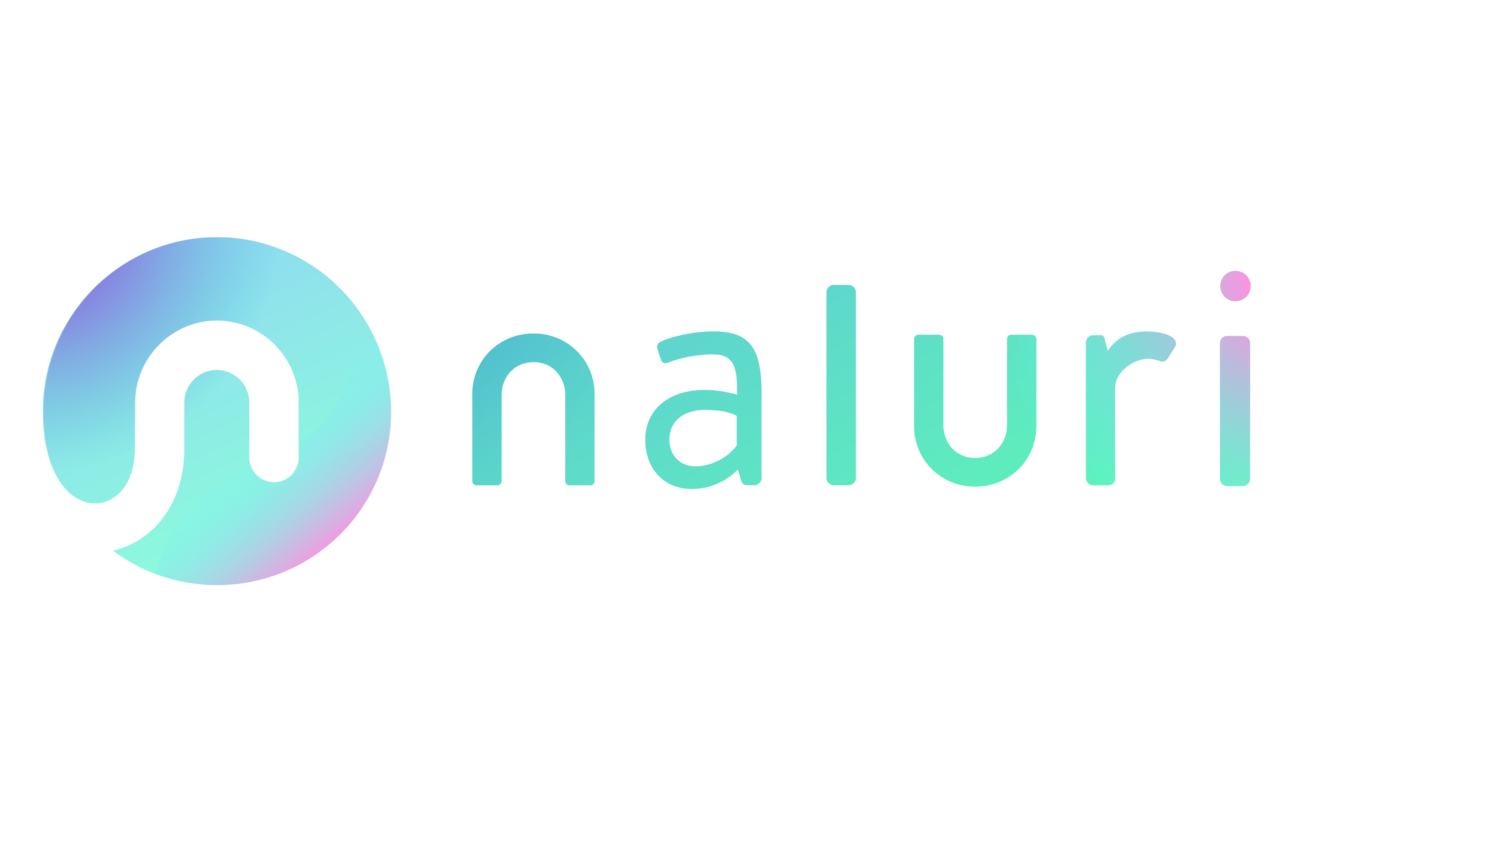 Naluri | Get healthier. One step at a time.